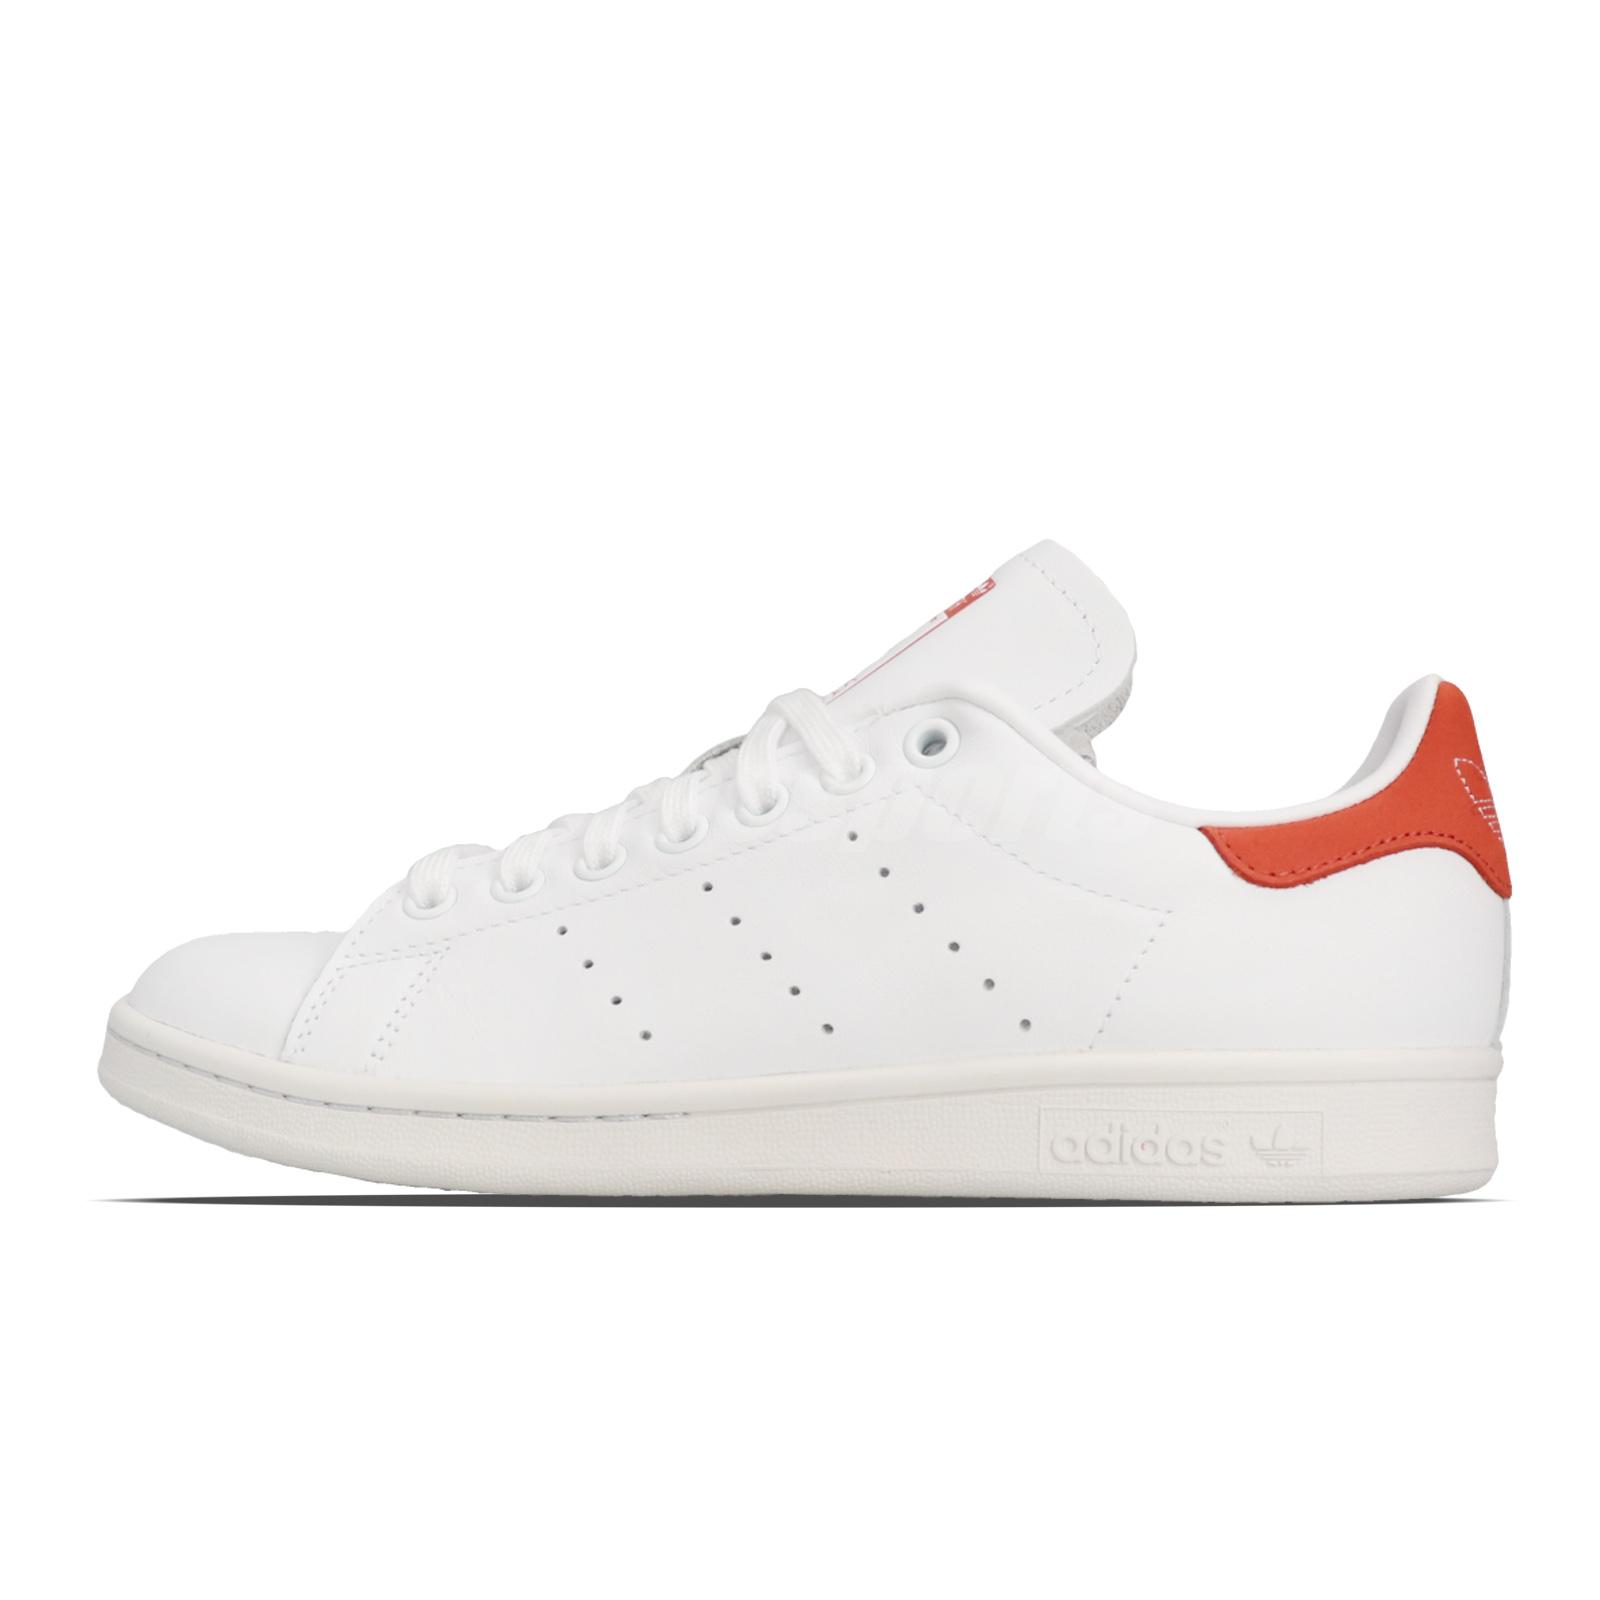 Dettagli su adidas Originals Stan Smith White Orange Men Women Unisex Classic Shoes BD8023